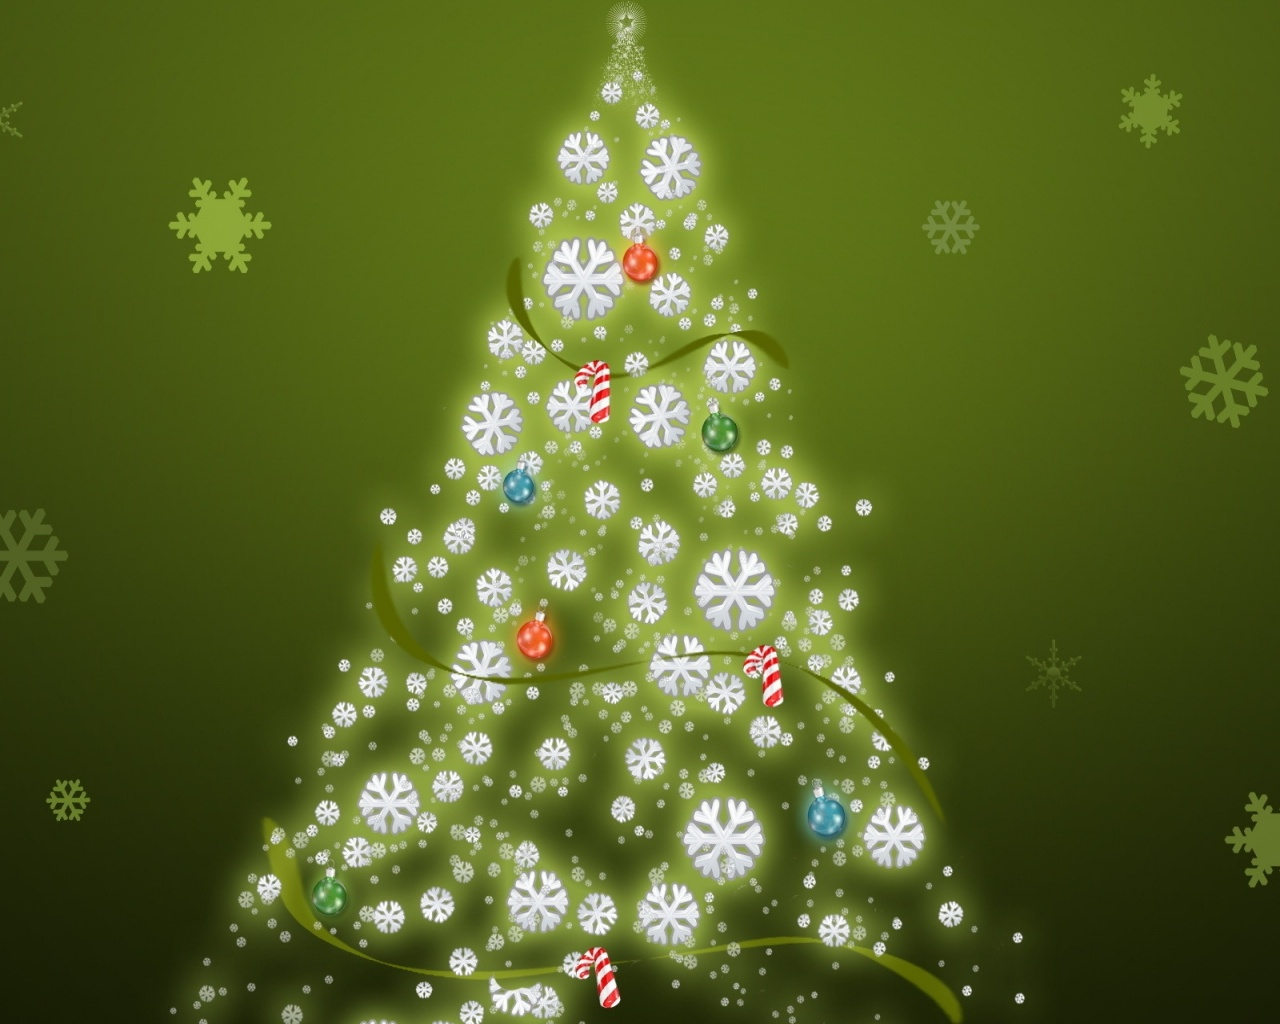 merry christmas live wallpaper free download